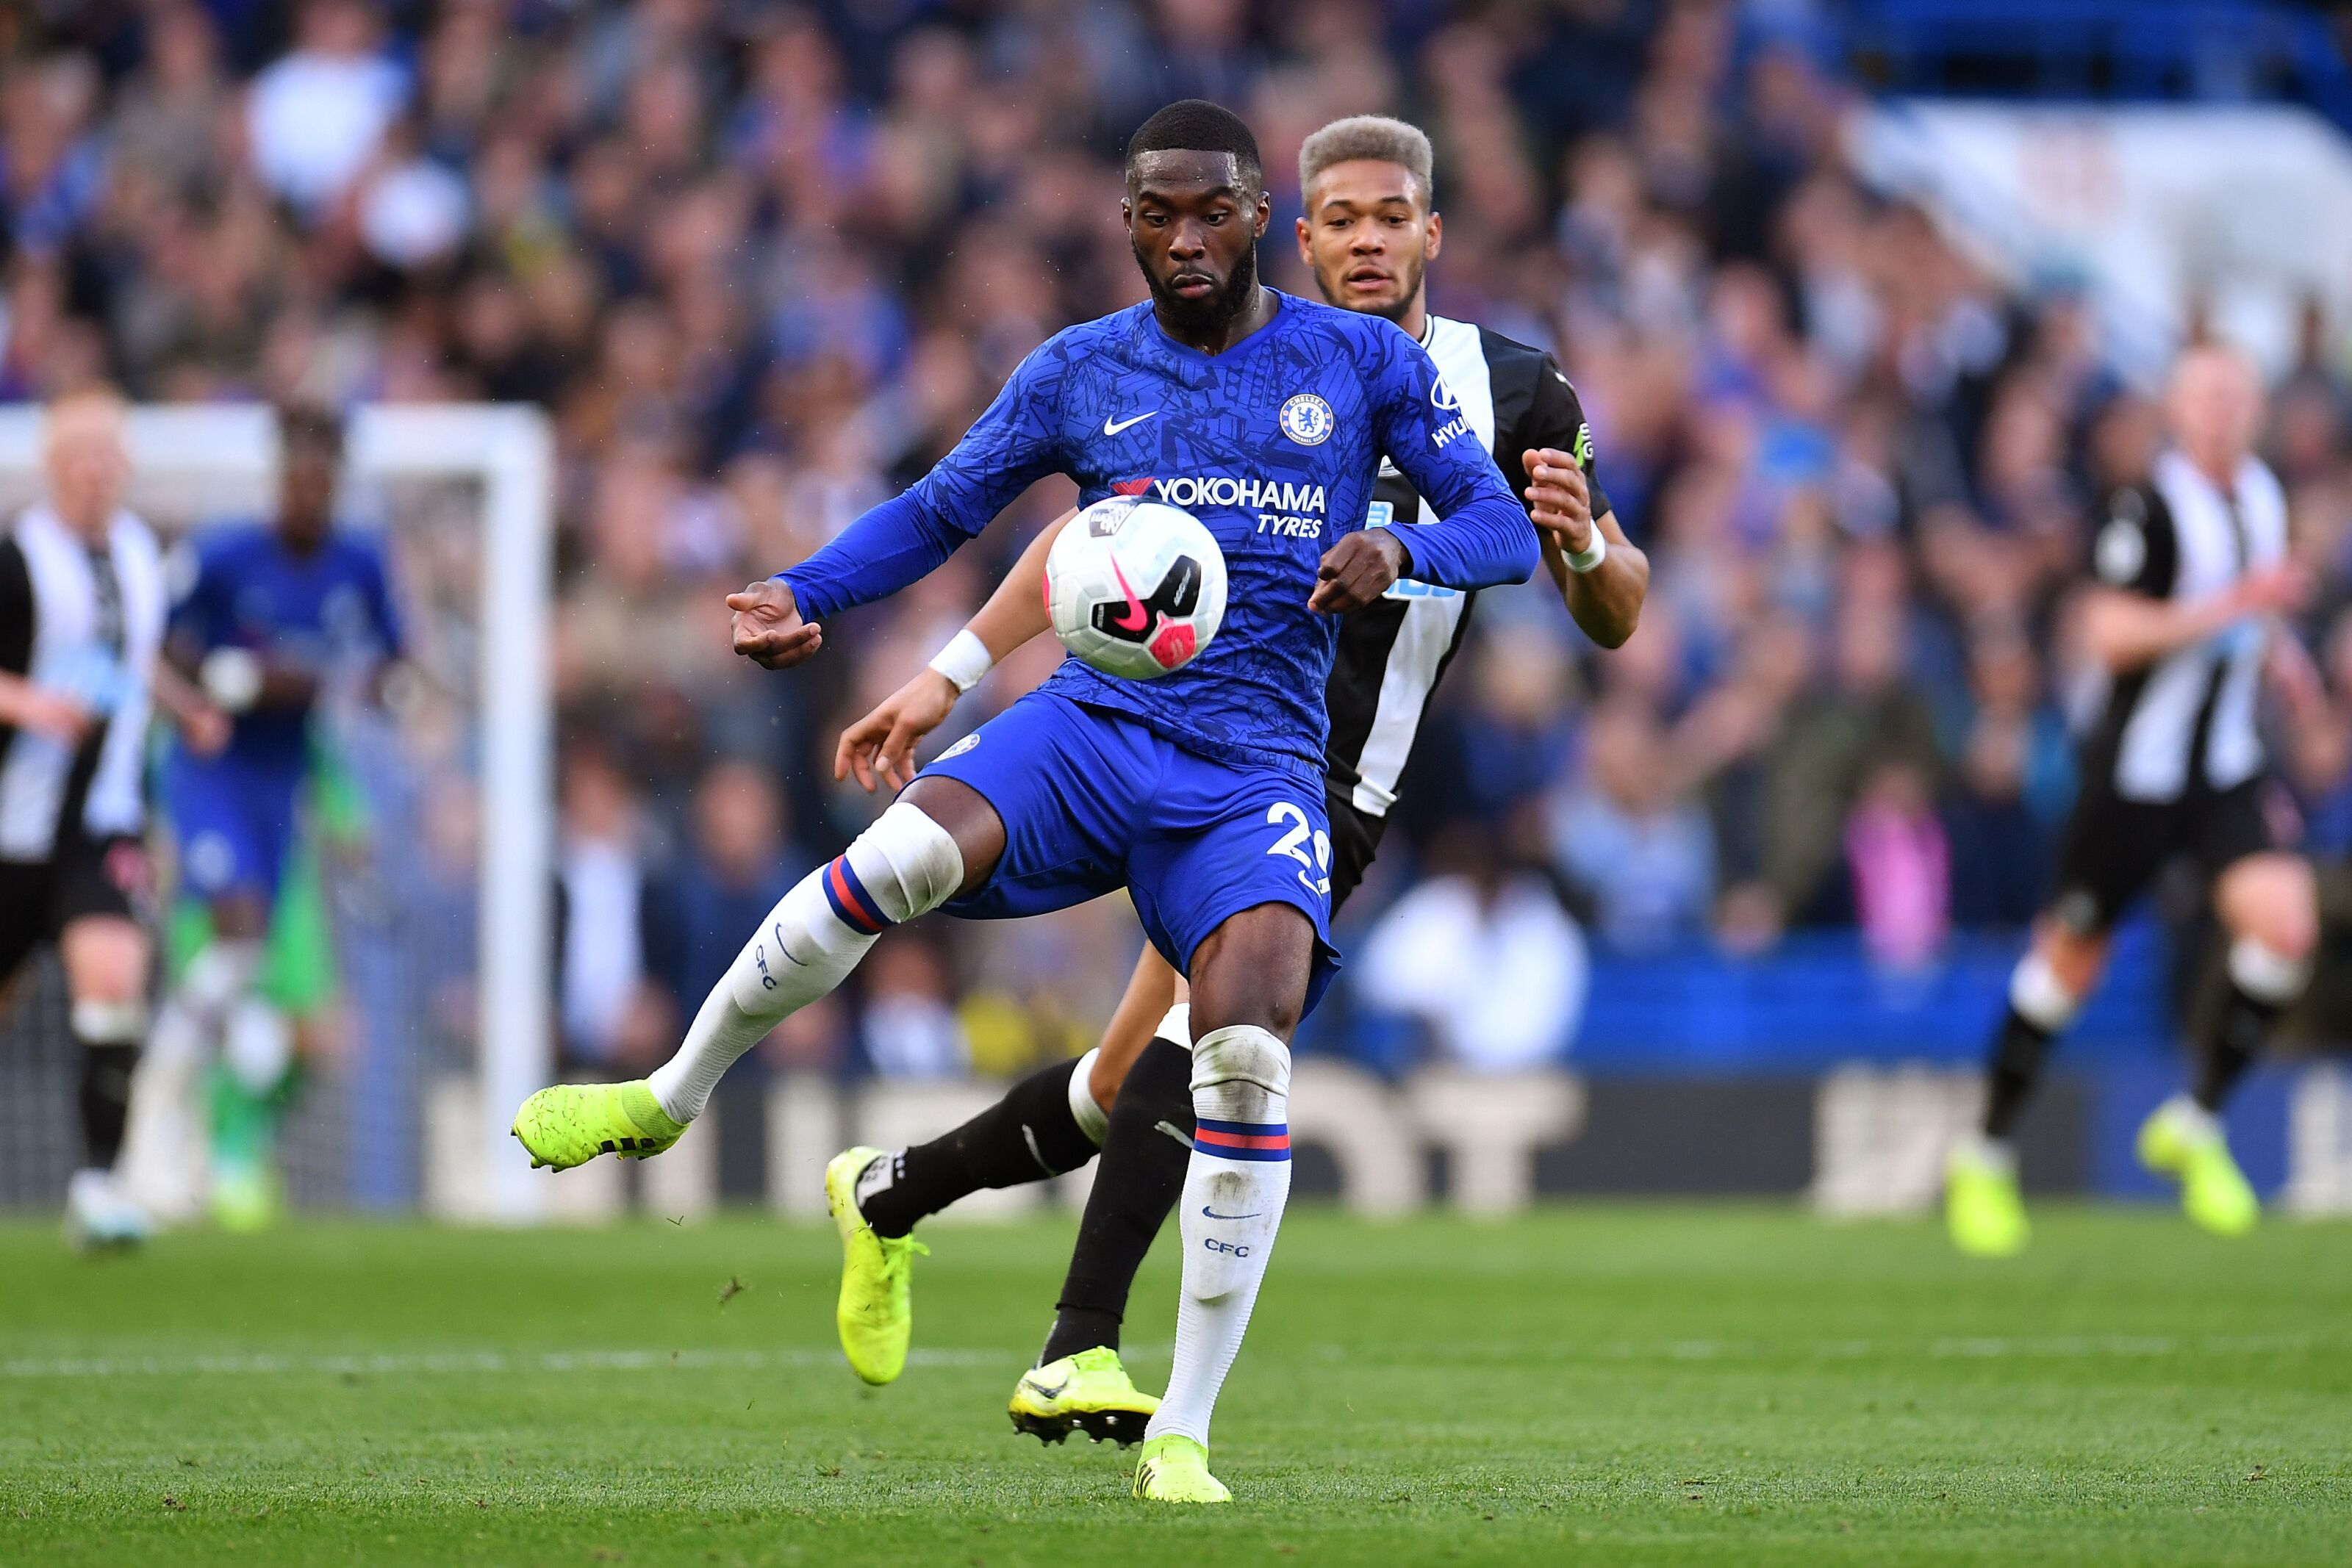 Chelsea defenders used low-pressure Newcastle to experiment freely